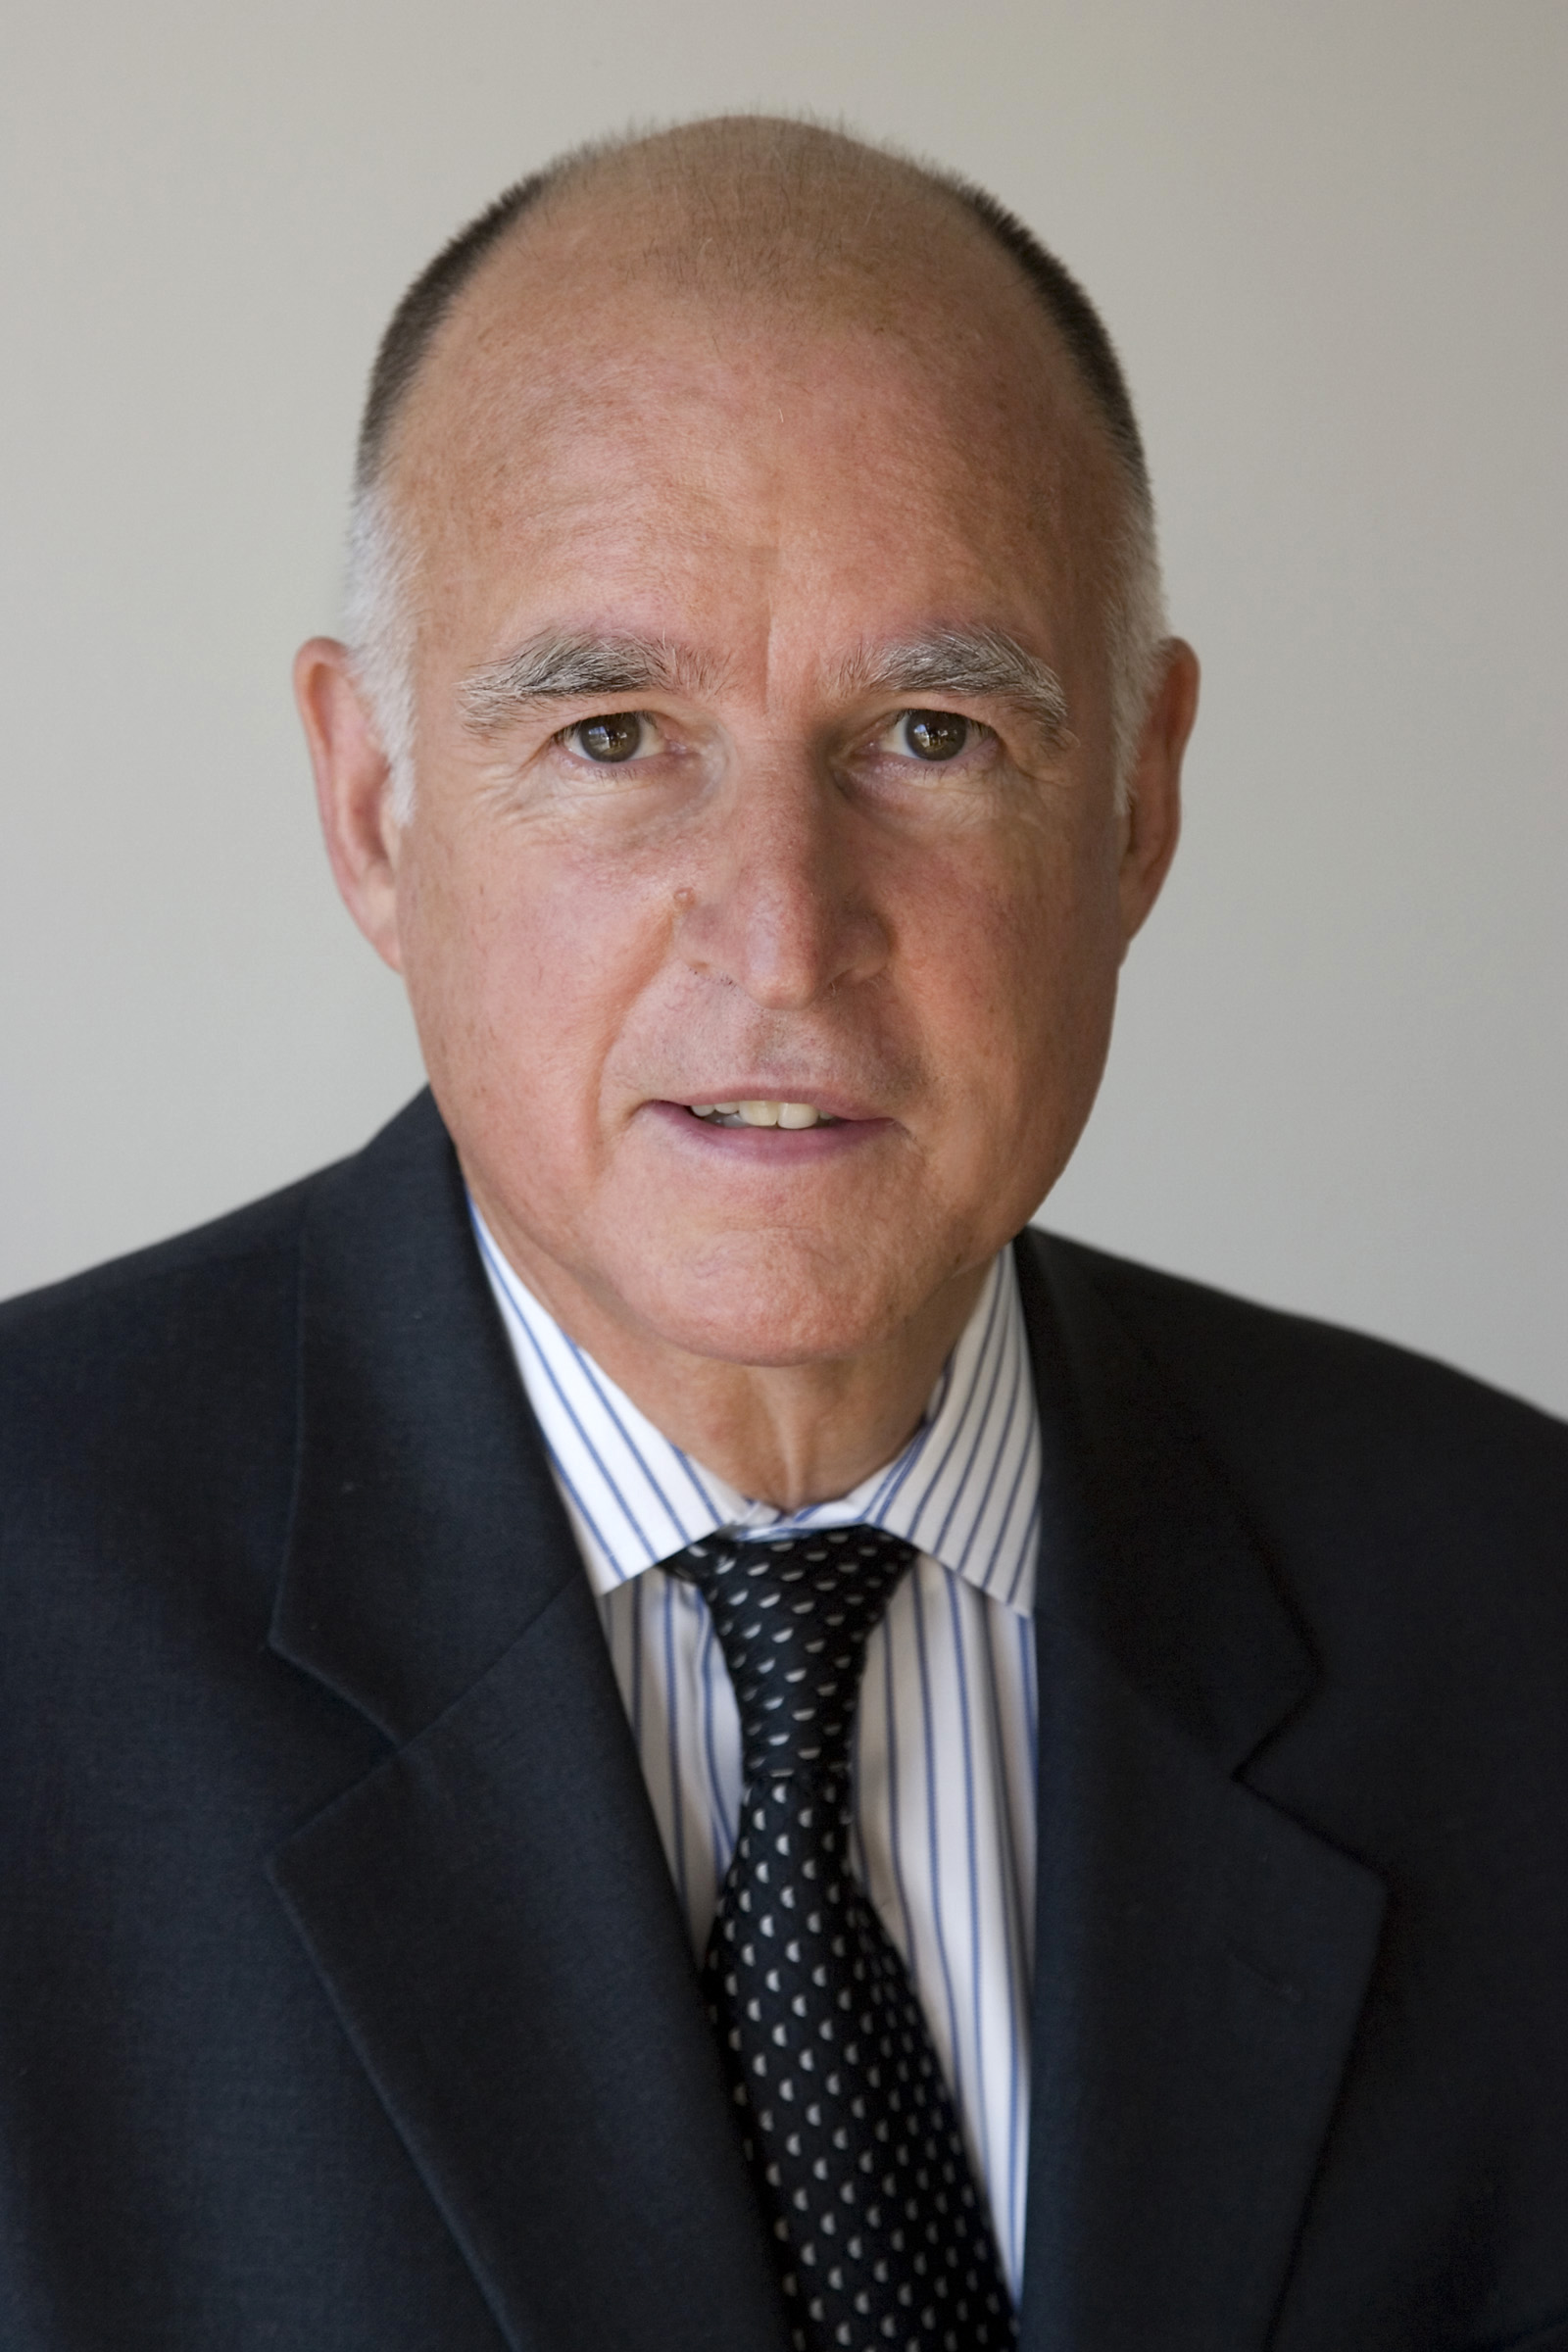 The 80-year old son of father (?) and mother(?), 170 cm tall Jerry Brown in 2018 photo